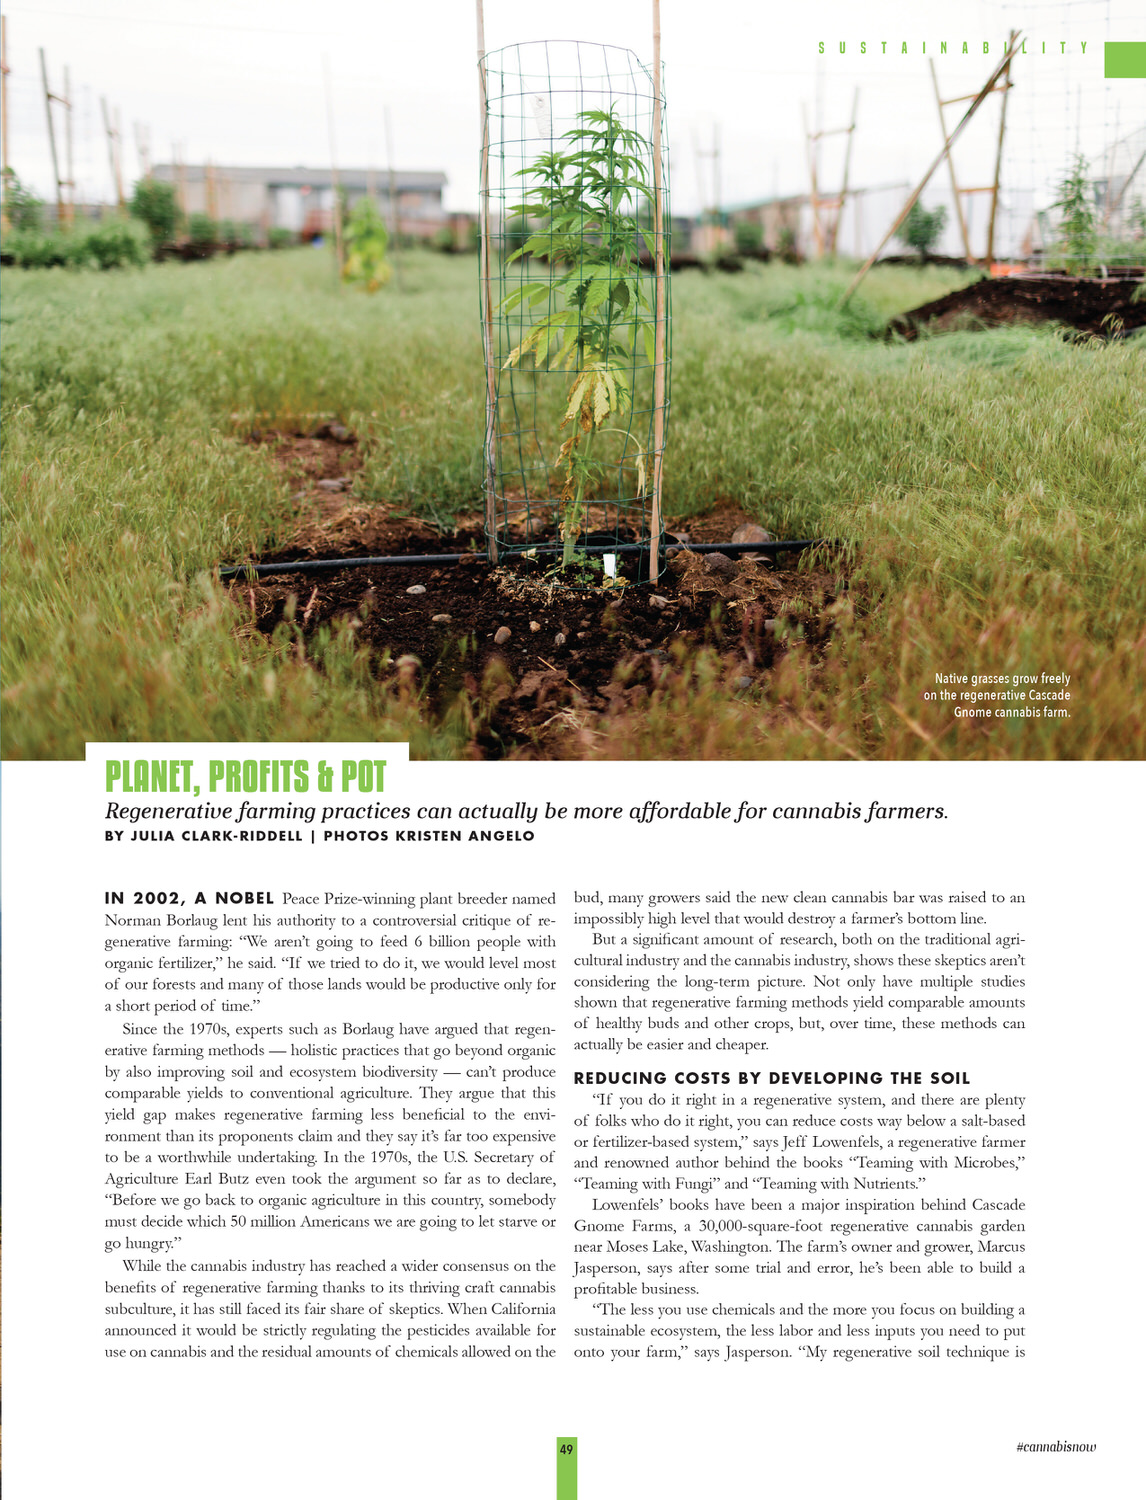 Cannabis Now, Issue 33